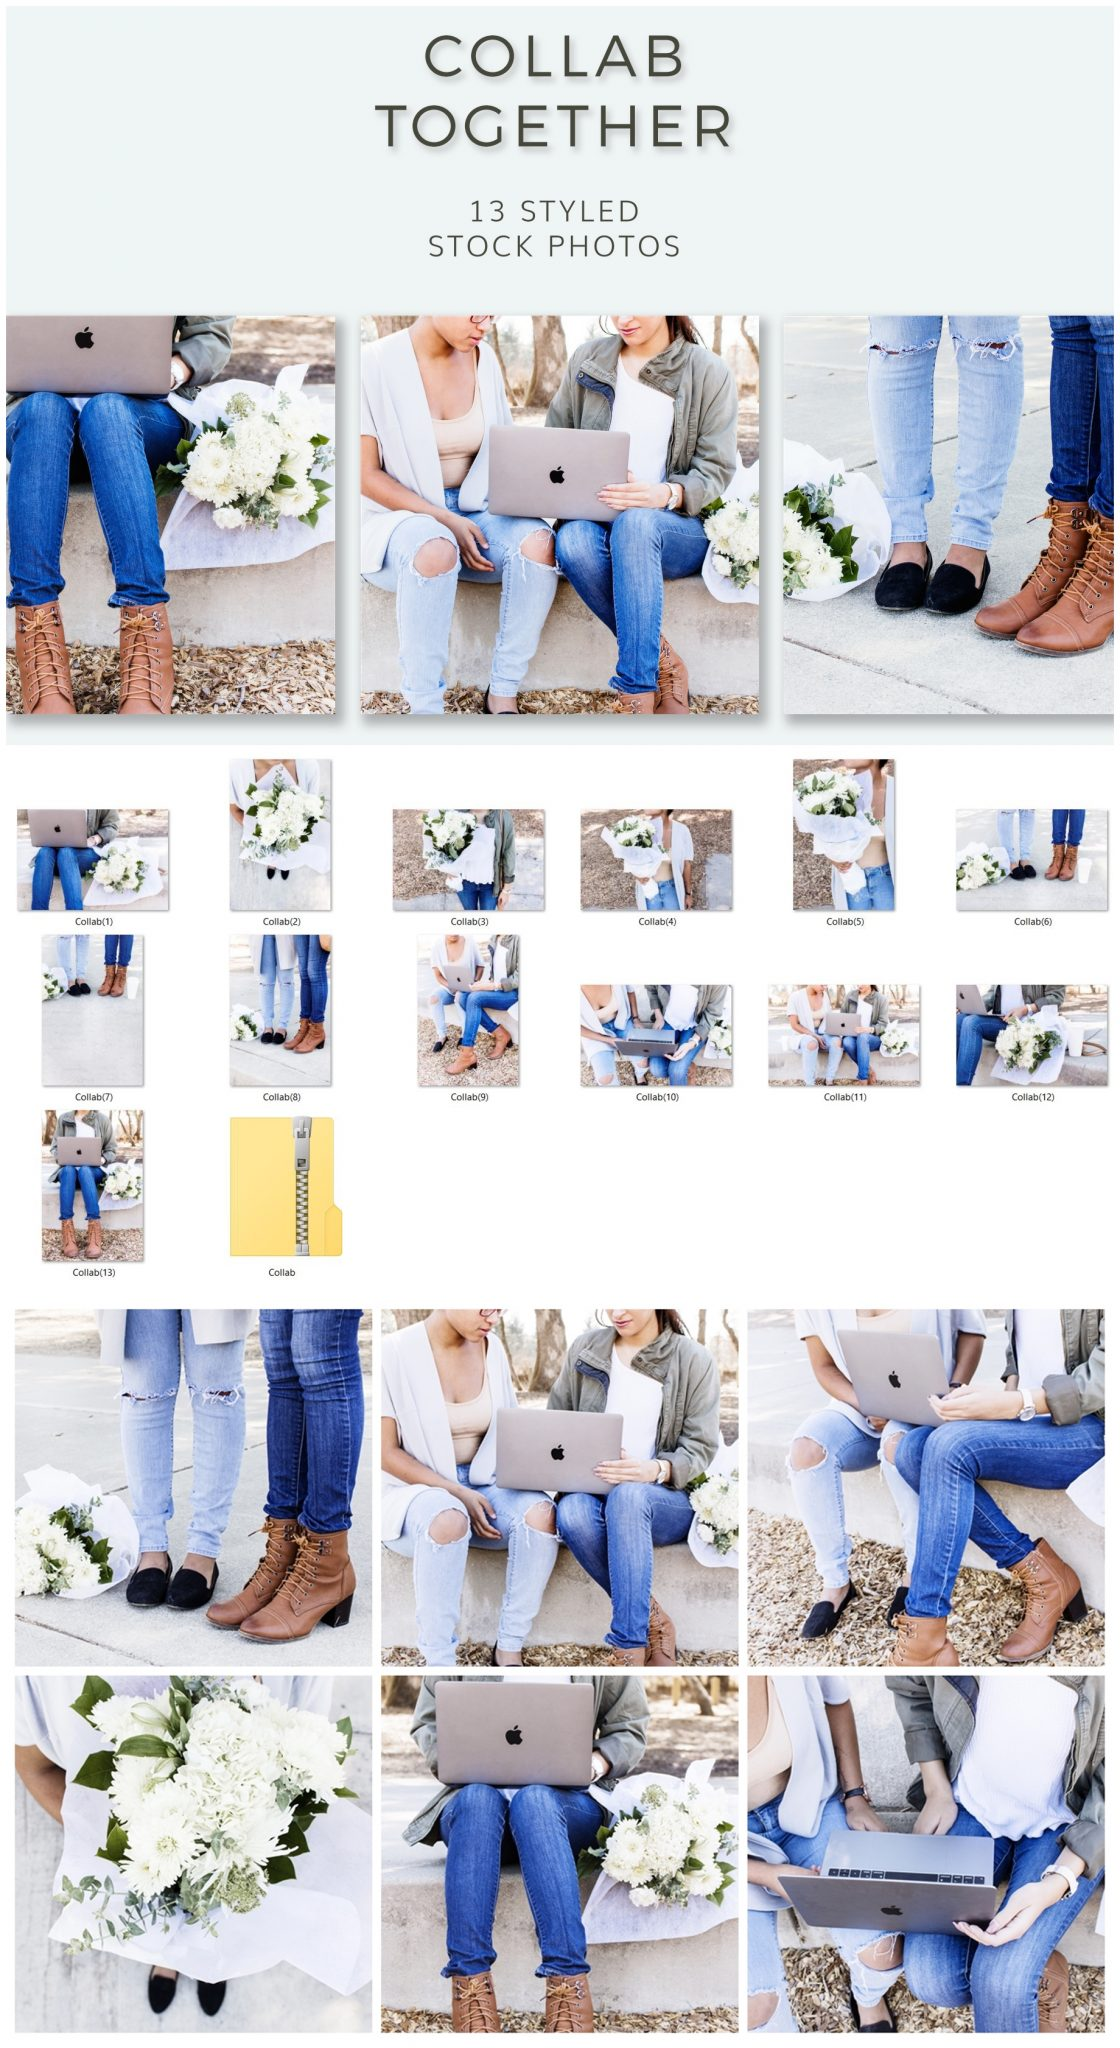 Styled stock photos _ Collaborate together for influencers and social media. Denim, Floral, macbook, friends and more